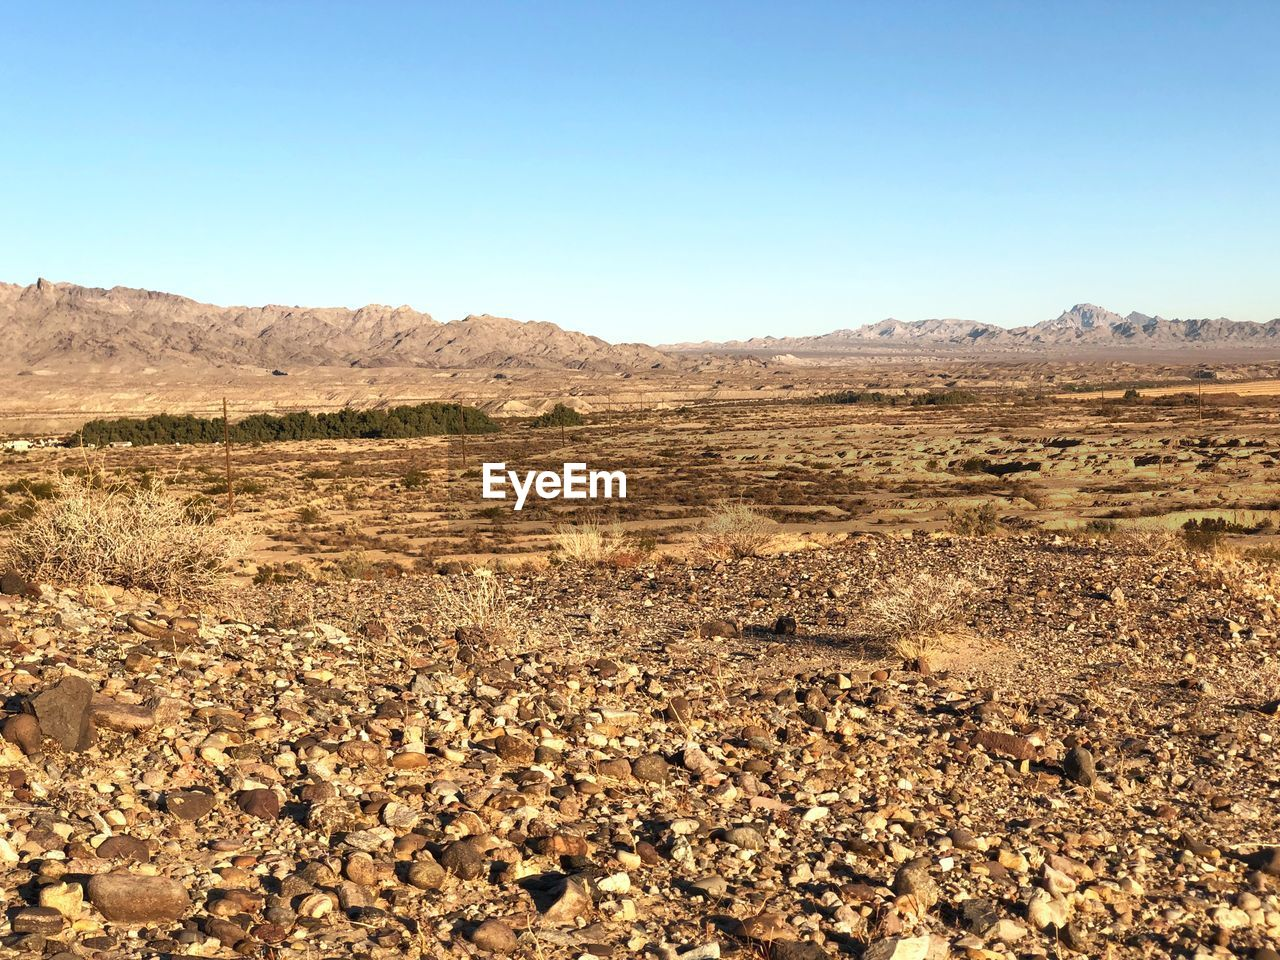 landscape, nature, arid climate, clear sky, day, no people, tranquil scene, outdoors, tranquility, mountain, desert, scenics, beauty in nature